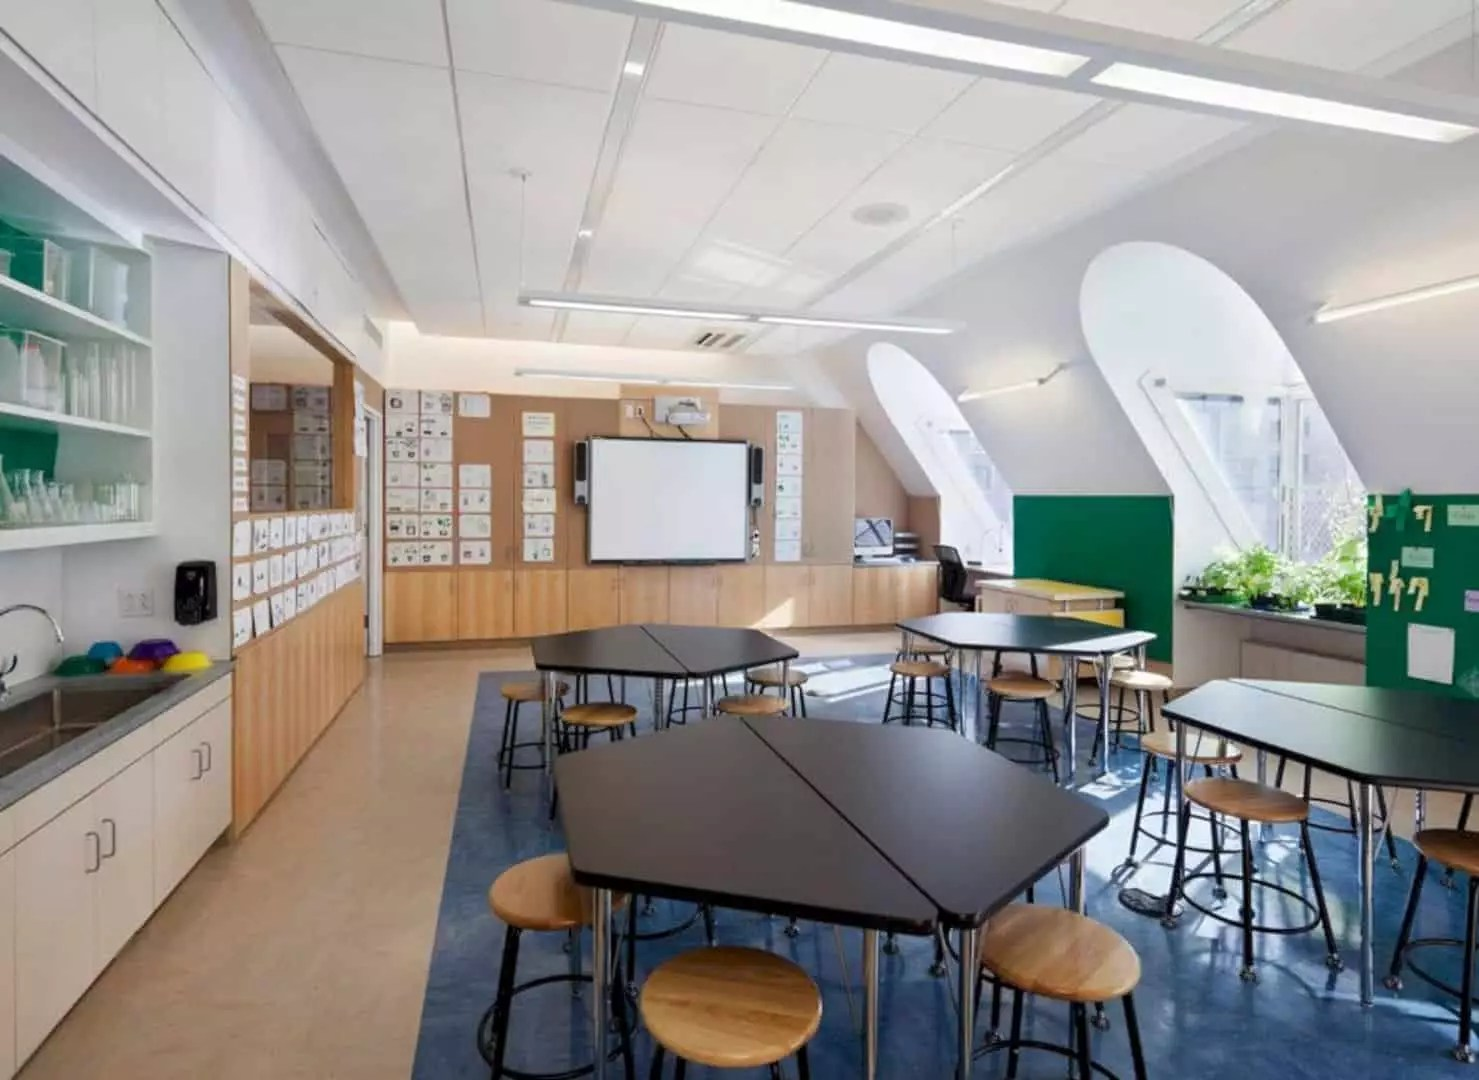 The Dalton School: Complete Renovation of An Old School in New York